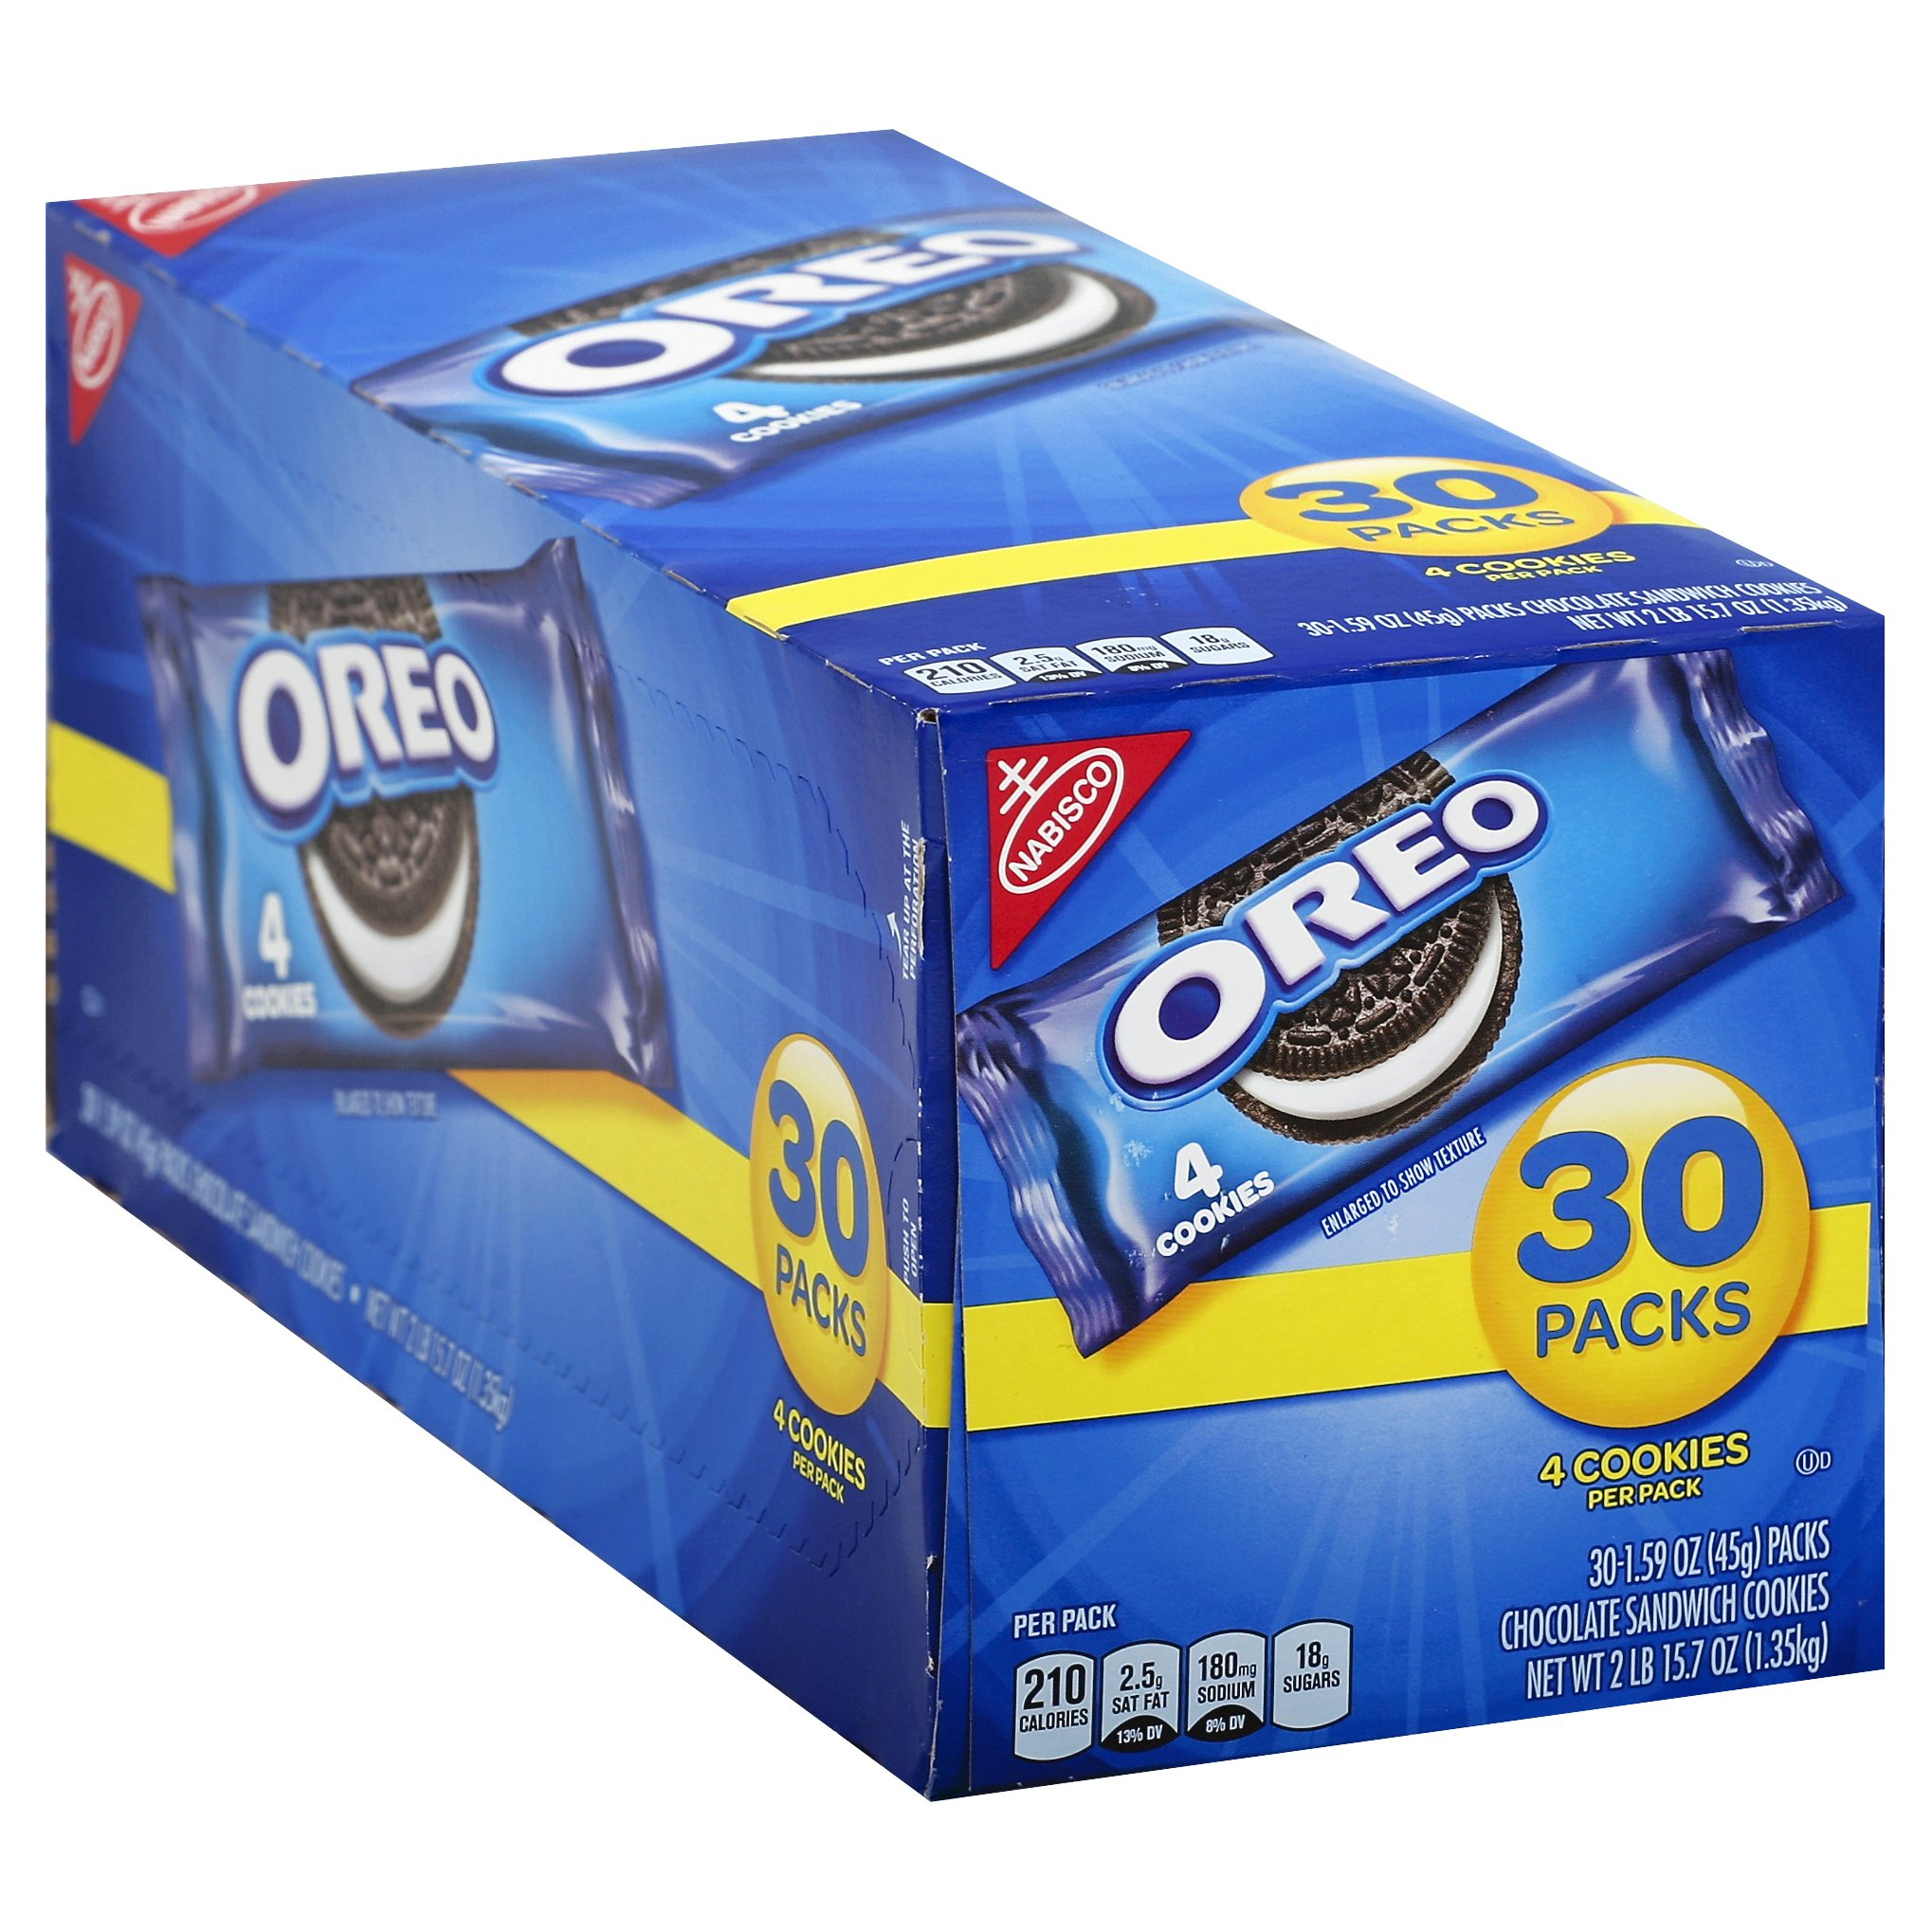 Oreo Chocolate Sandwich Cookies - 30 Halloween Snack Pack (120 Cookies Total) by Oreo